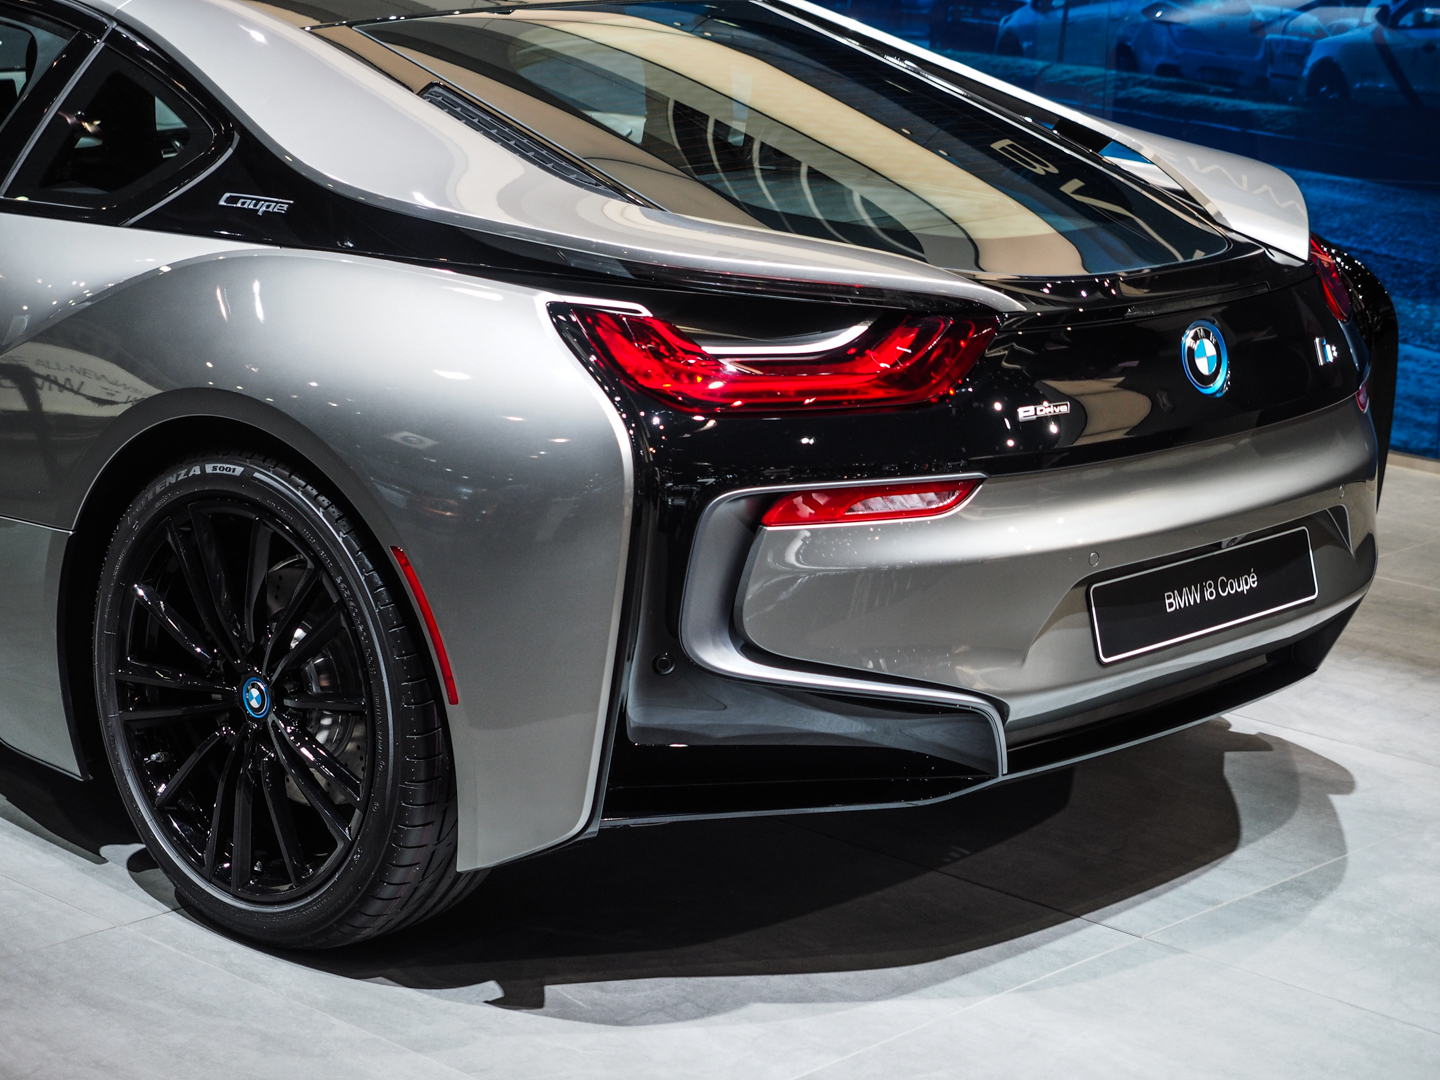 Olympus Digital Camera 2018 Detroit Auto Showbmw I8